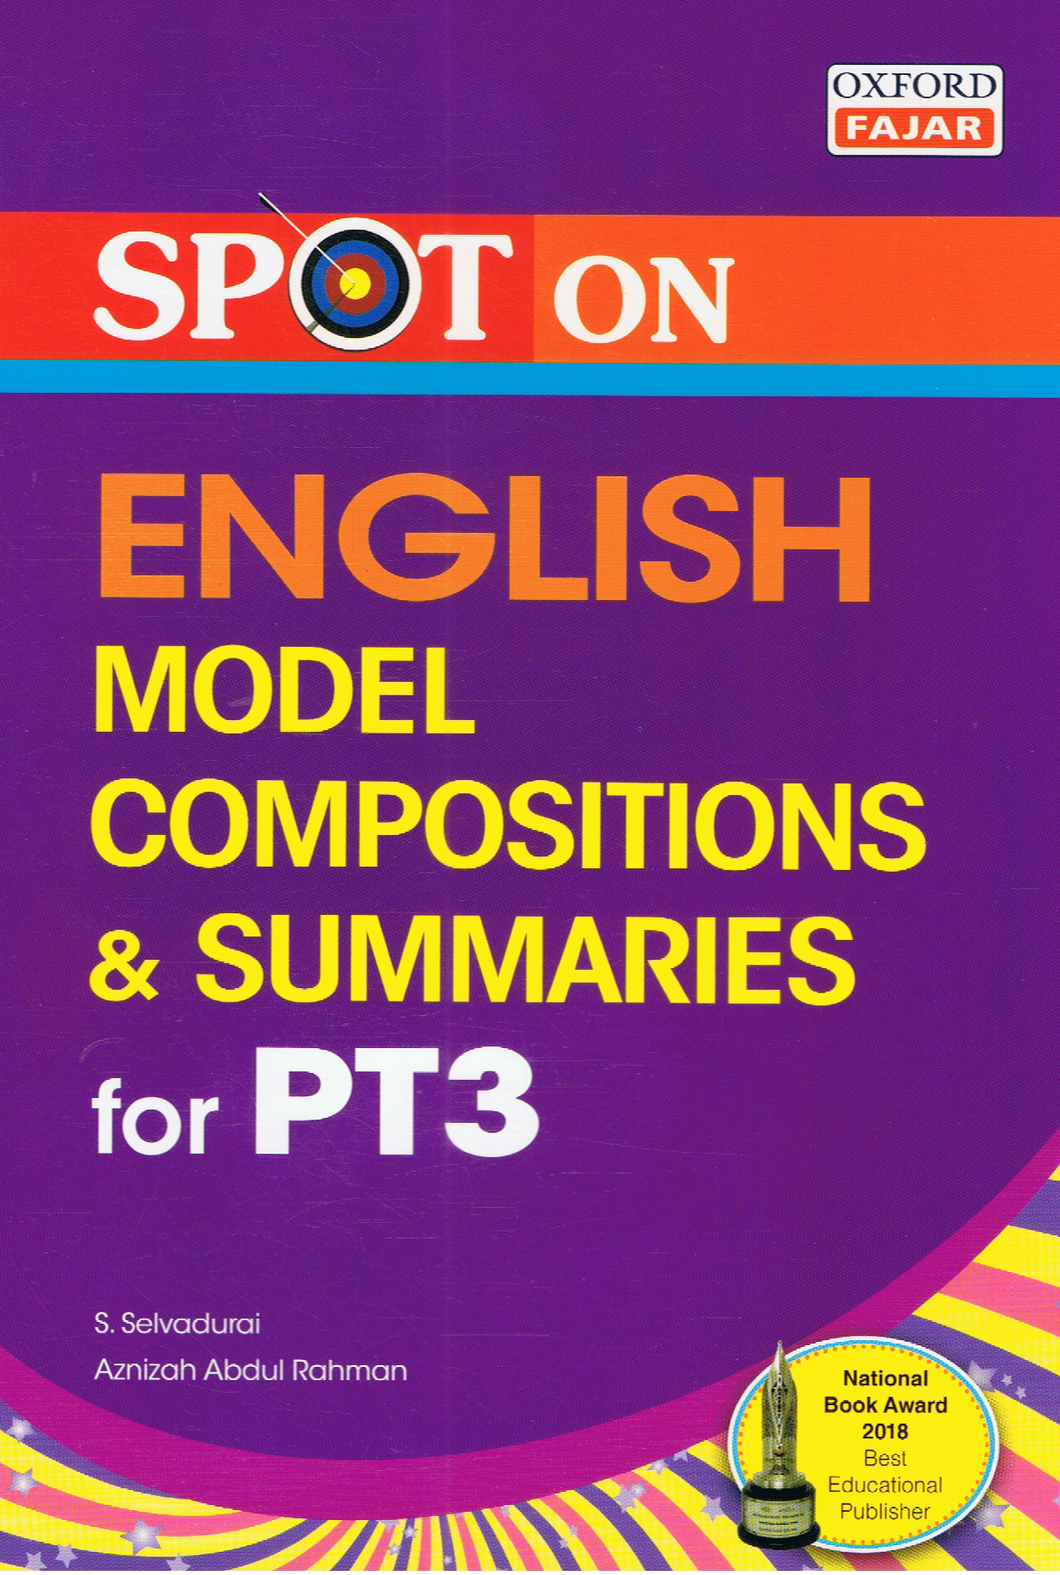 Spot On: English Model Compositions & Summaries For PT3